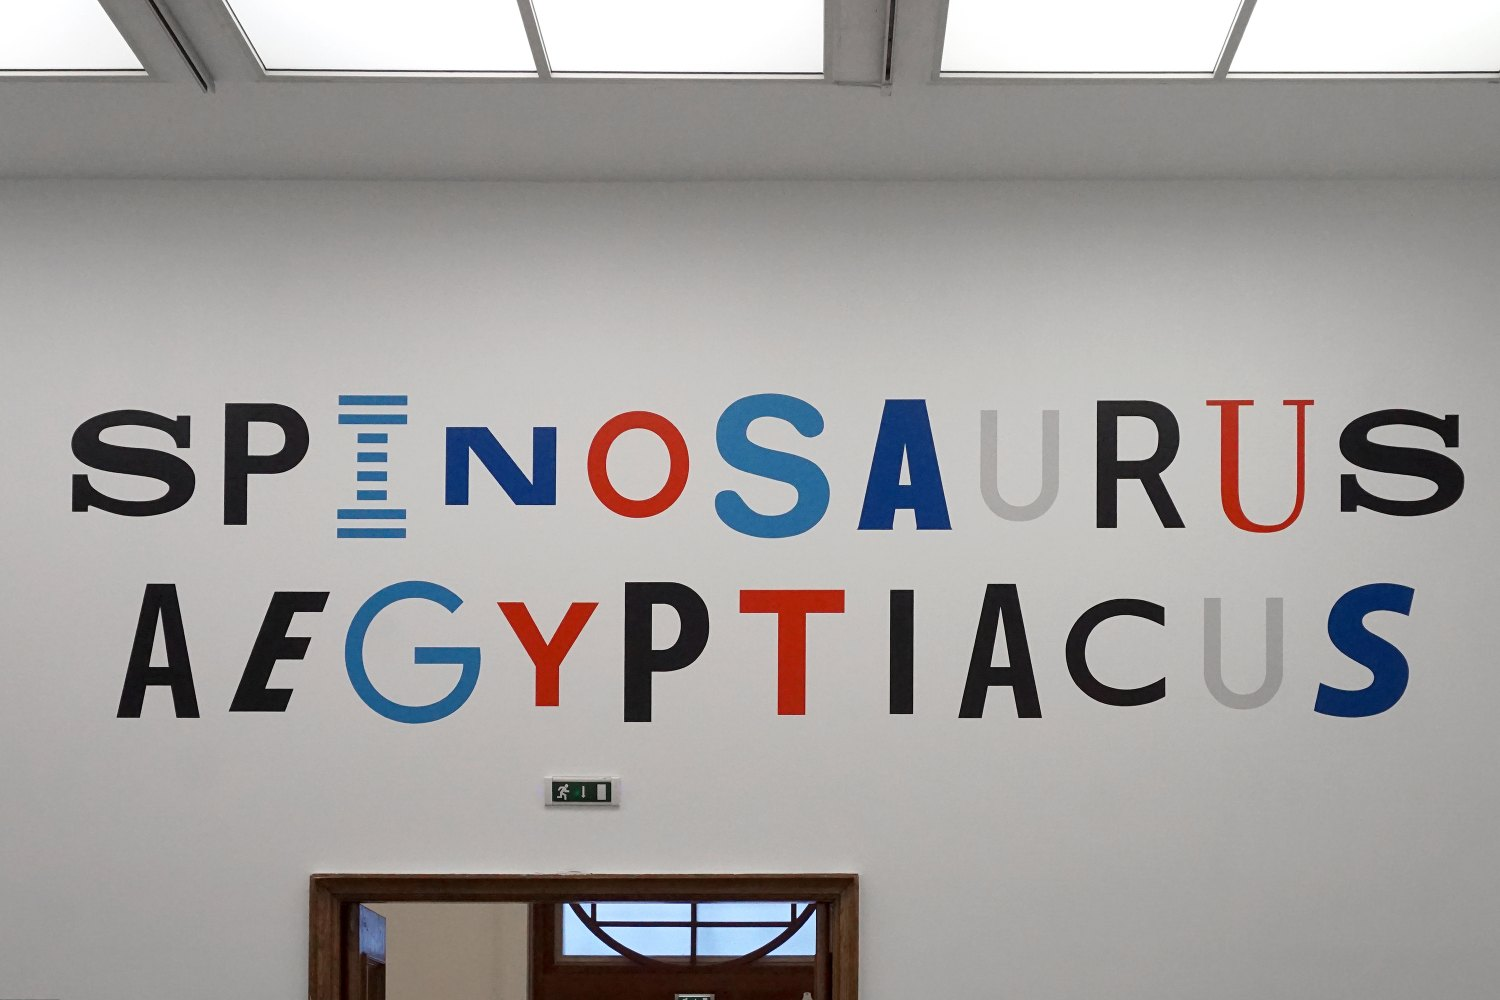 Sean Snyder Spinosaurus Aegyptiacus (Visual Identity), 2018 Painted wall (RAL 3020, RAL 5012, RAL 5017, RAL 7047, RAL 9017), 135 x 500 cm